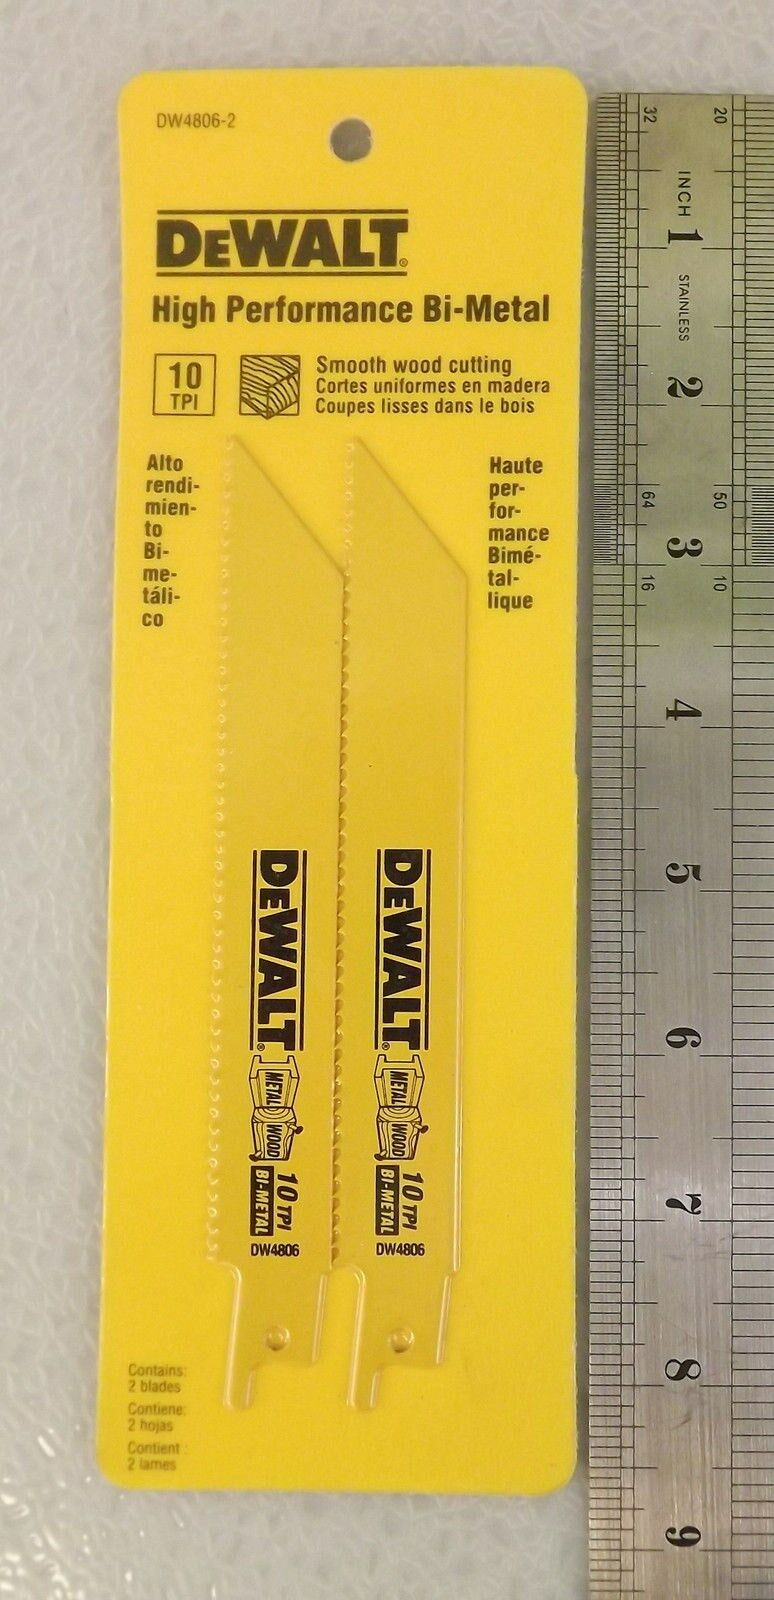 2 New Dewalt Reciprocating Bi-Metal Saw Blades DW4806-2 1